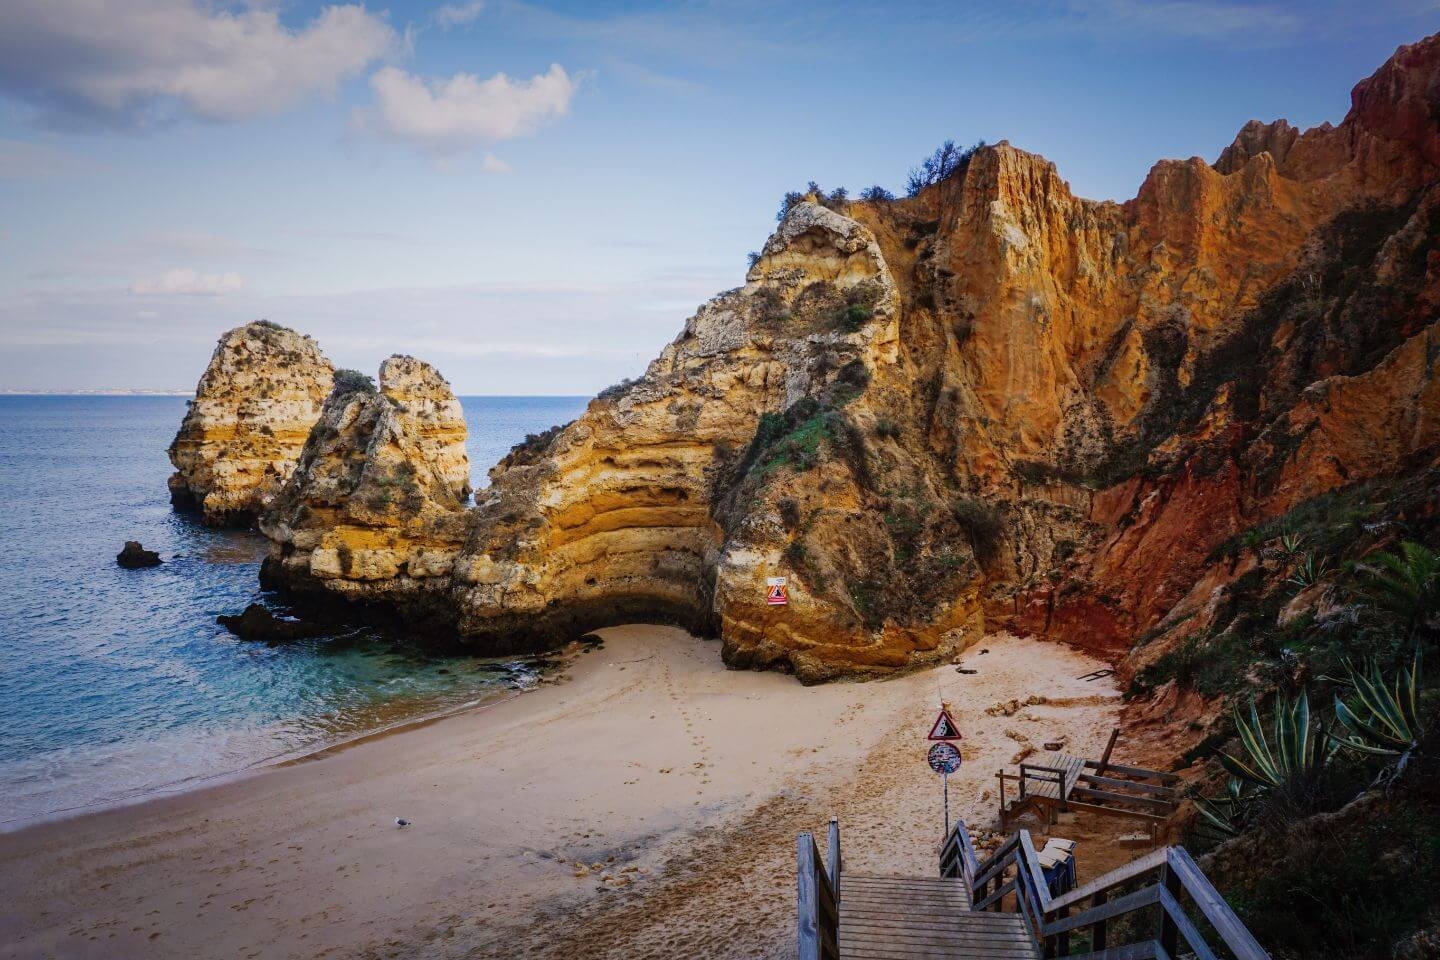 Praia do Camilo, Lagos, Algarve in November